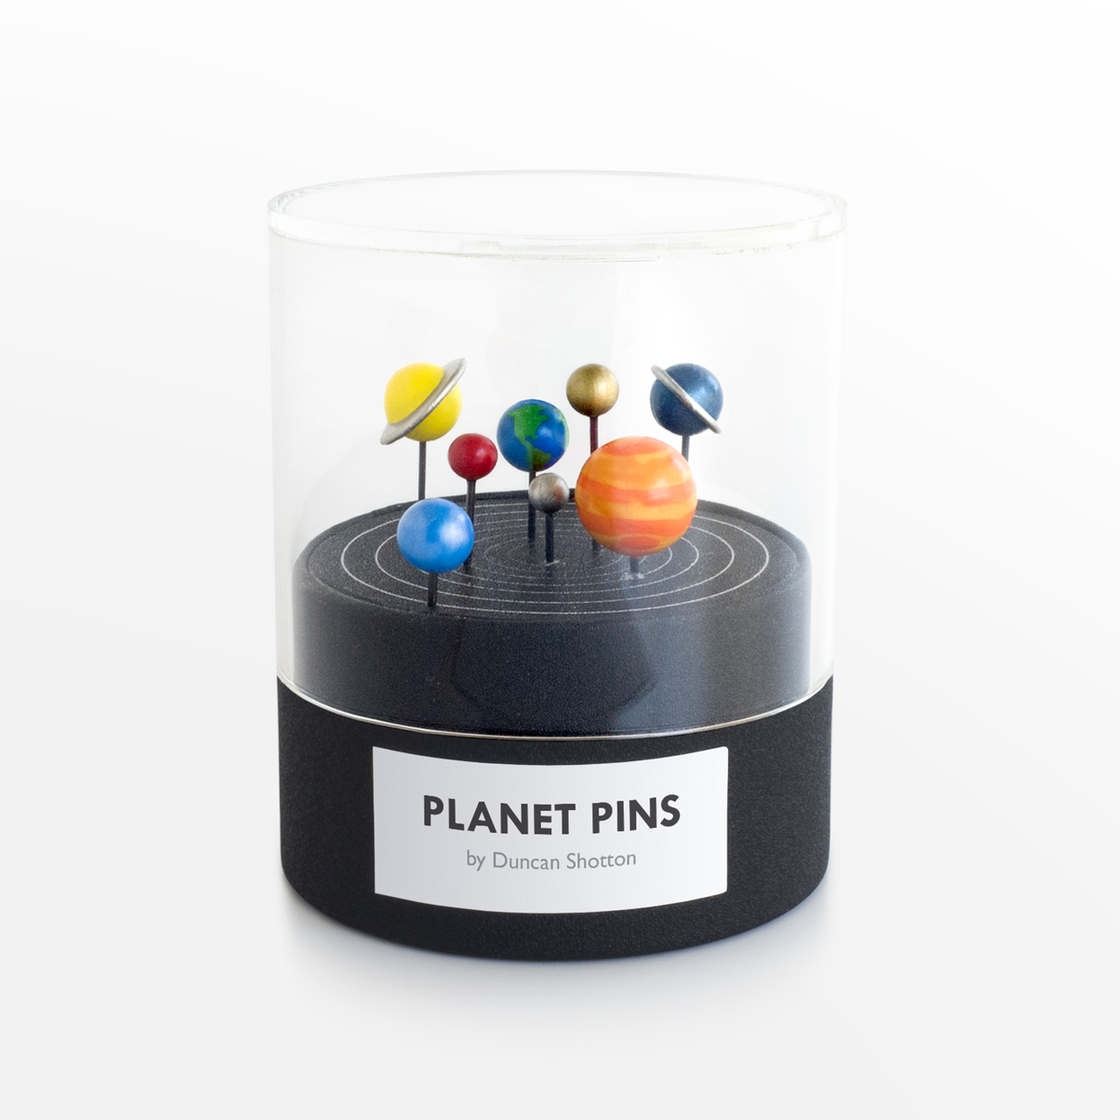 Planet Pins – Some adorable pins shaped as miniature planets (7 pics)